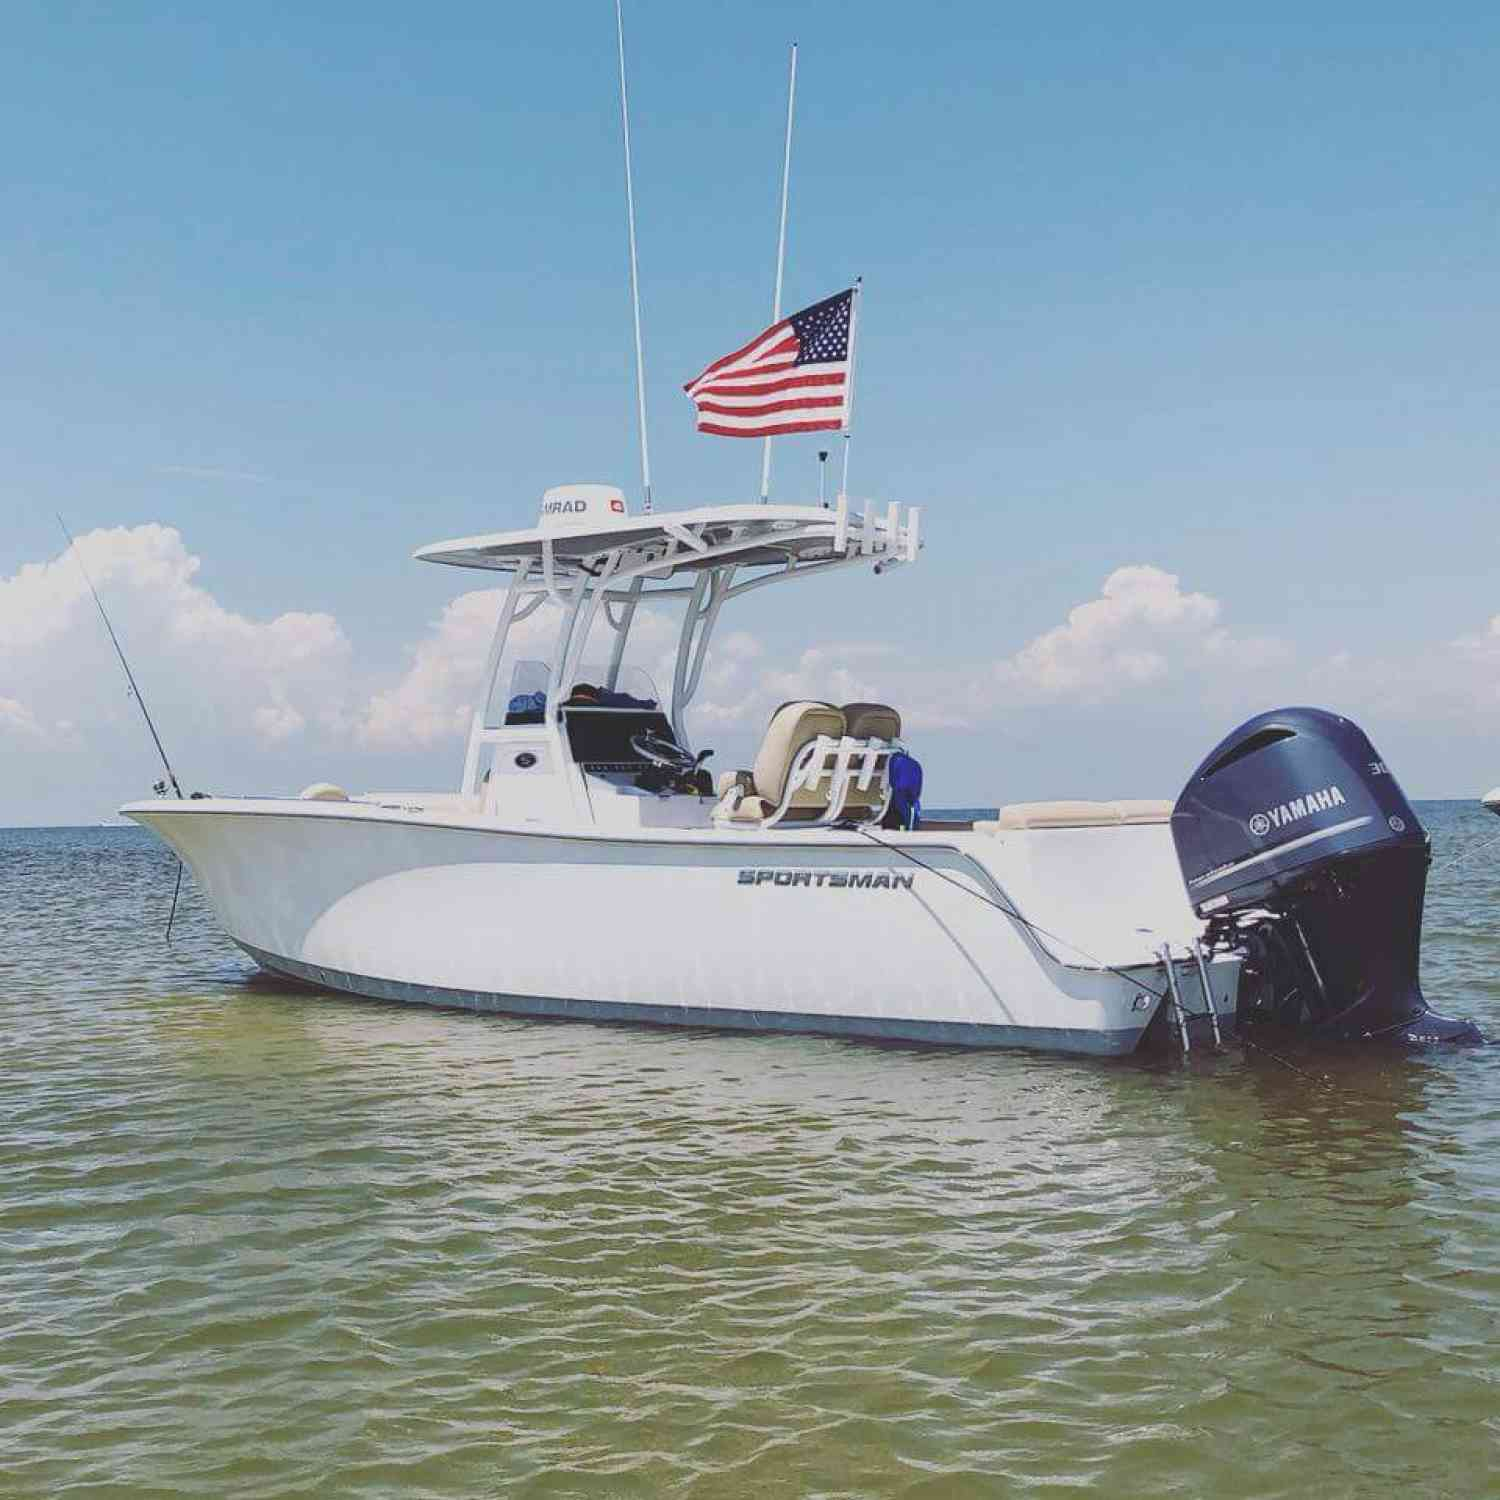 Title: Island time - On board their Sportsman Heritage 241 Center Console - Location: Gulfport Mississippi. Participating in the Photo Contest #SportsmanAugust2018